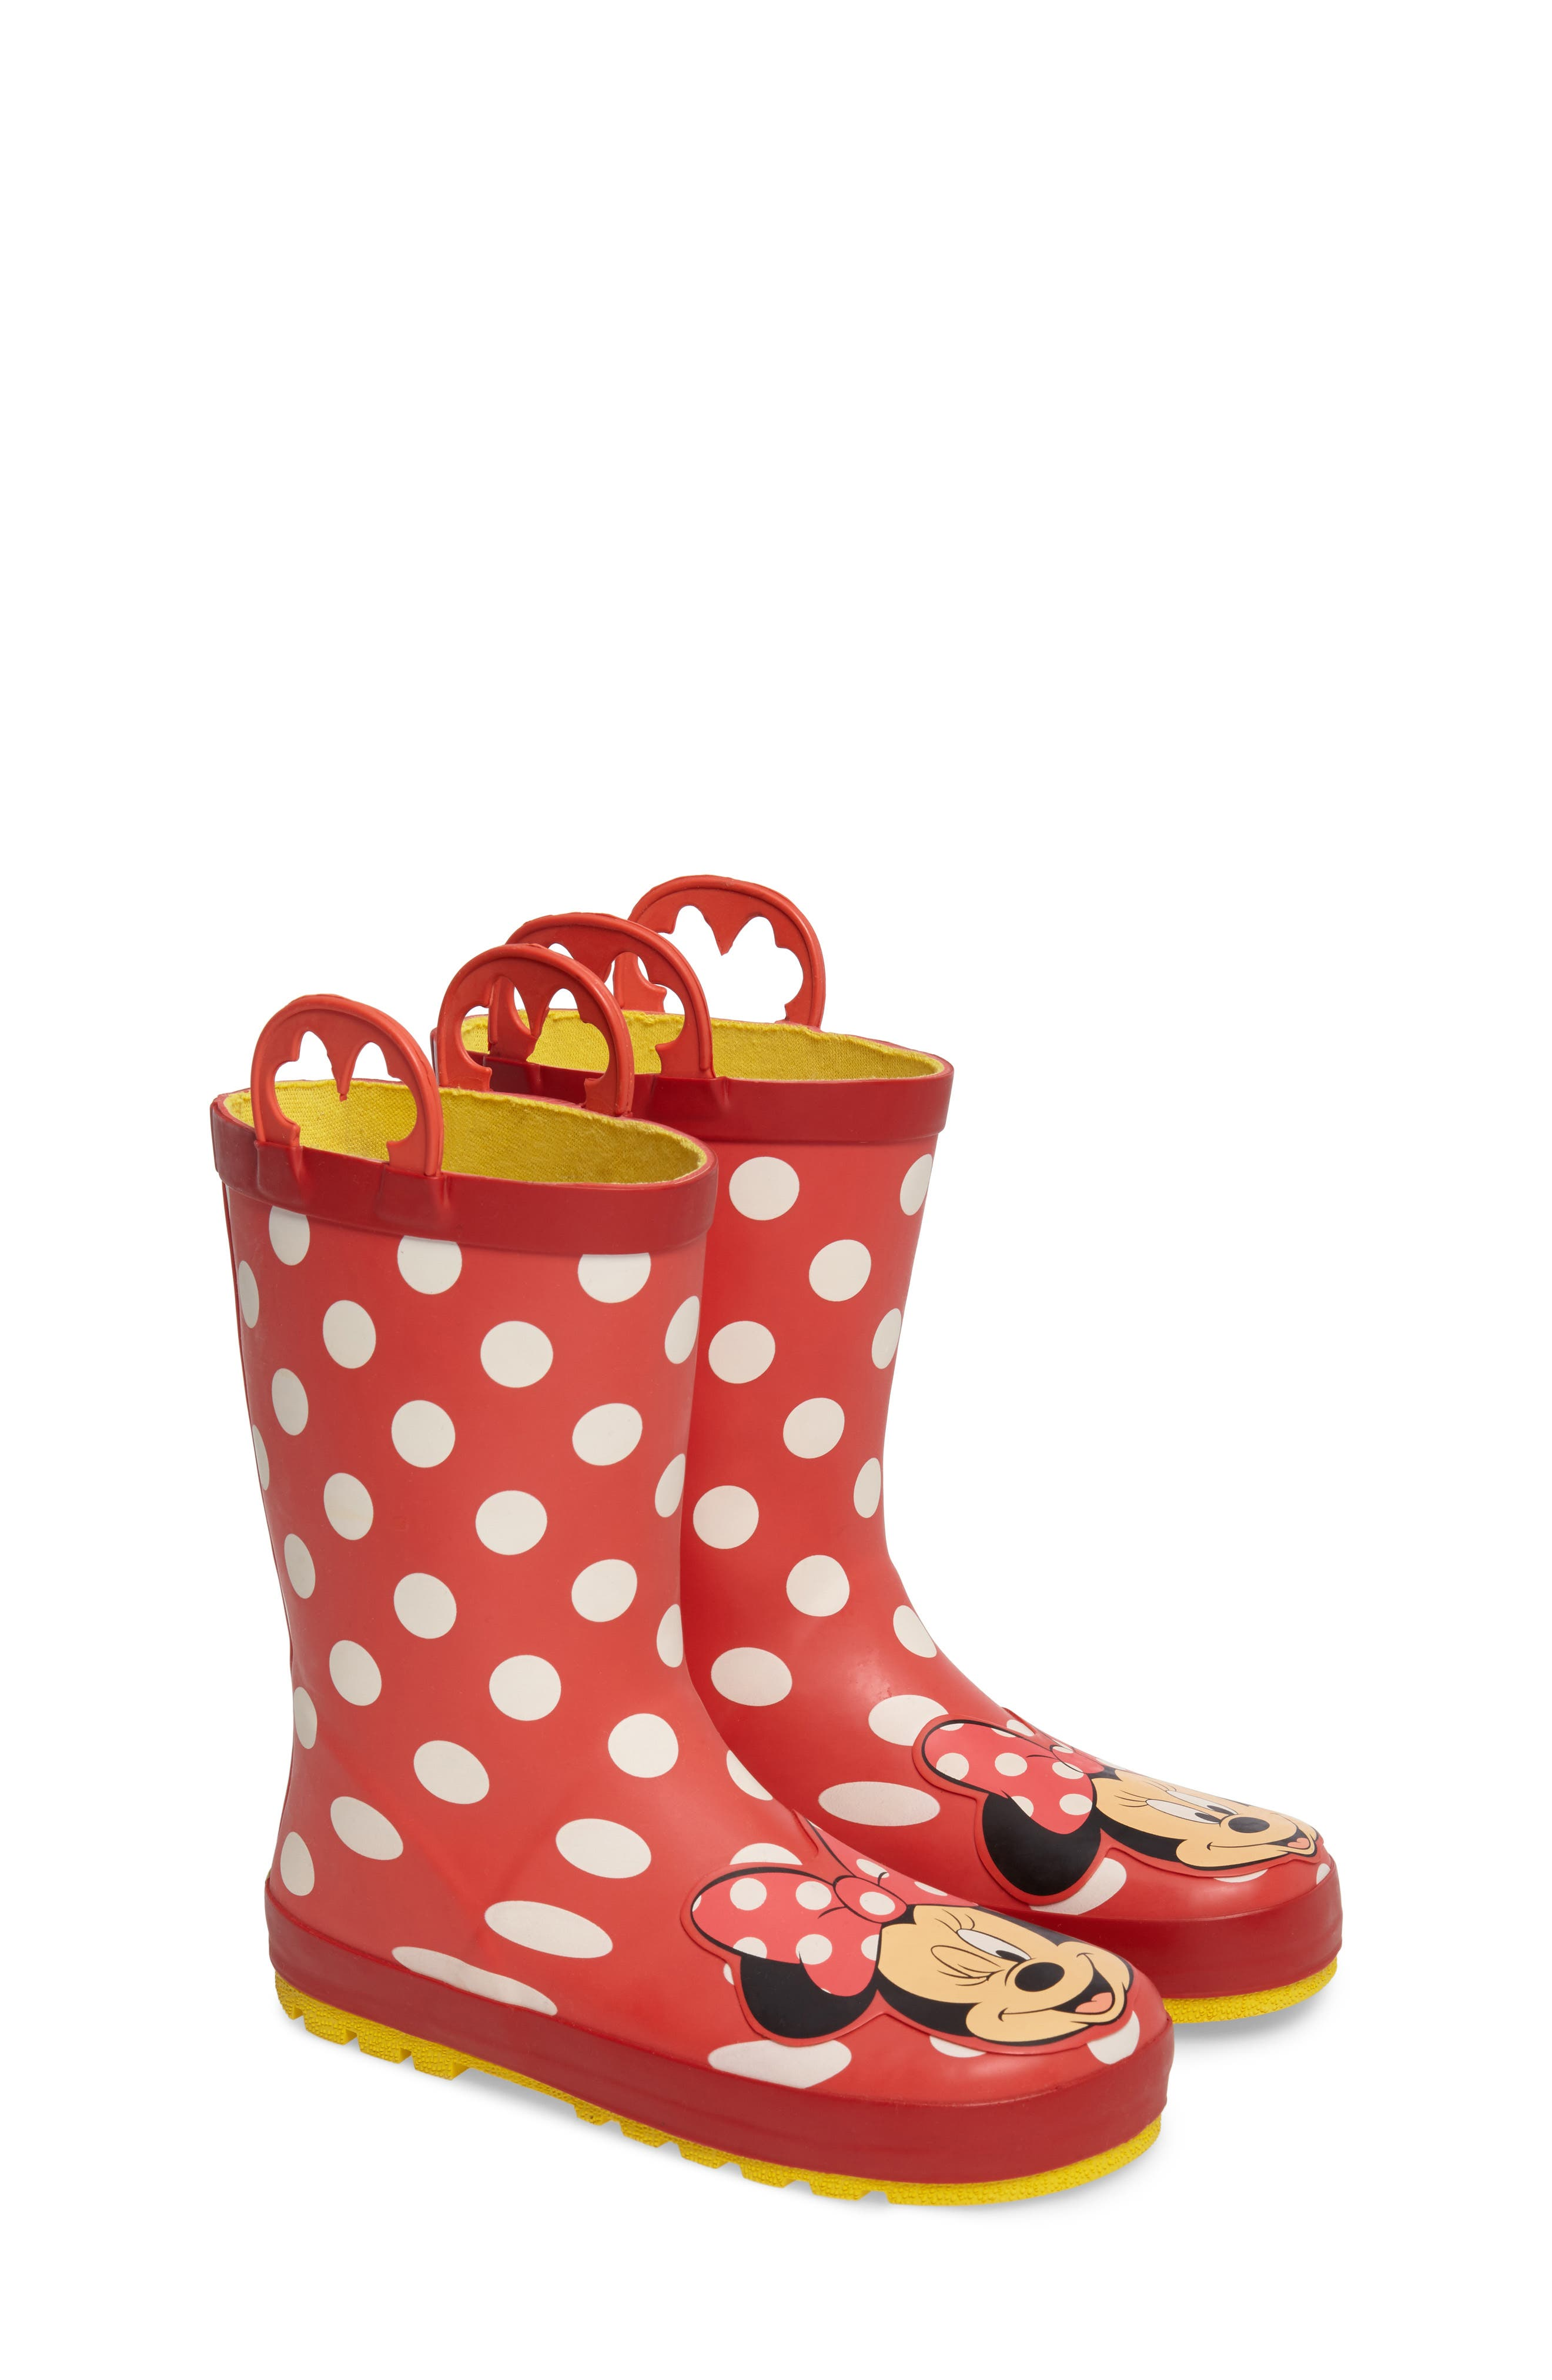 Main Image - Western Chief Minnie Mouse Rain Boot (Walker, Toddler, Little Kid & Big Kid)